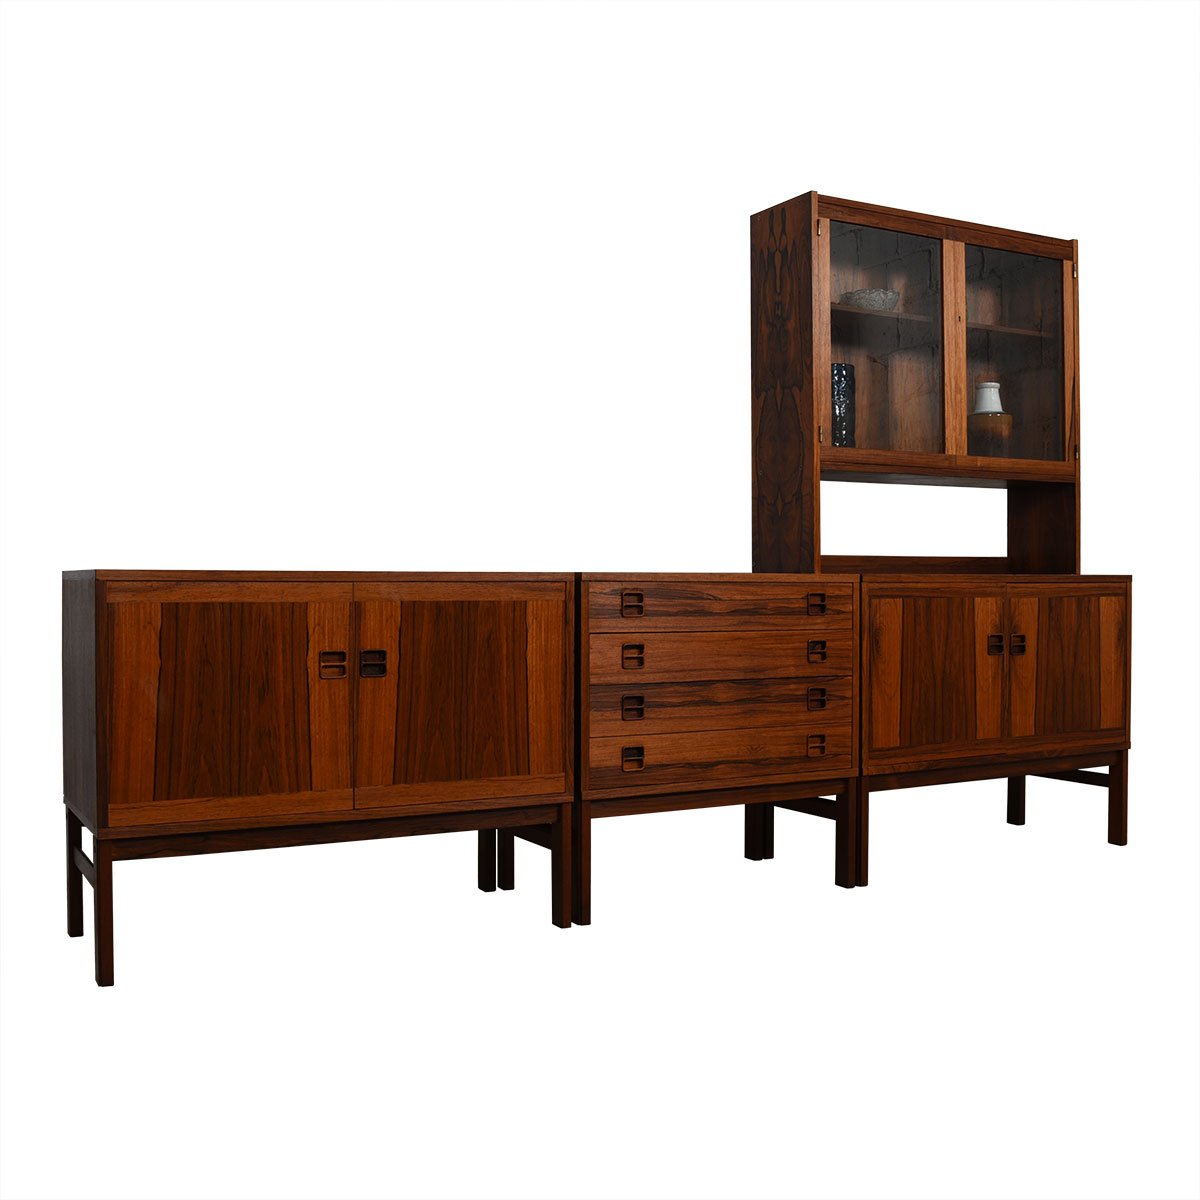 Danish Modern Rosewood Room Divider / Wall Unit / Storage Cabinets